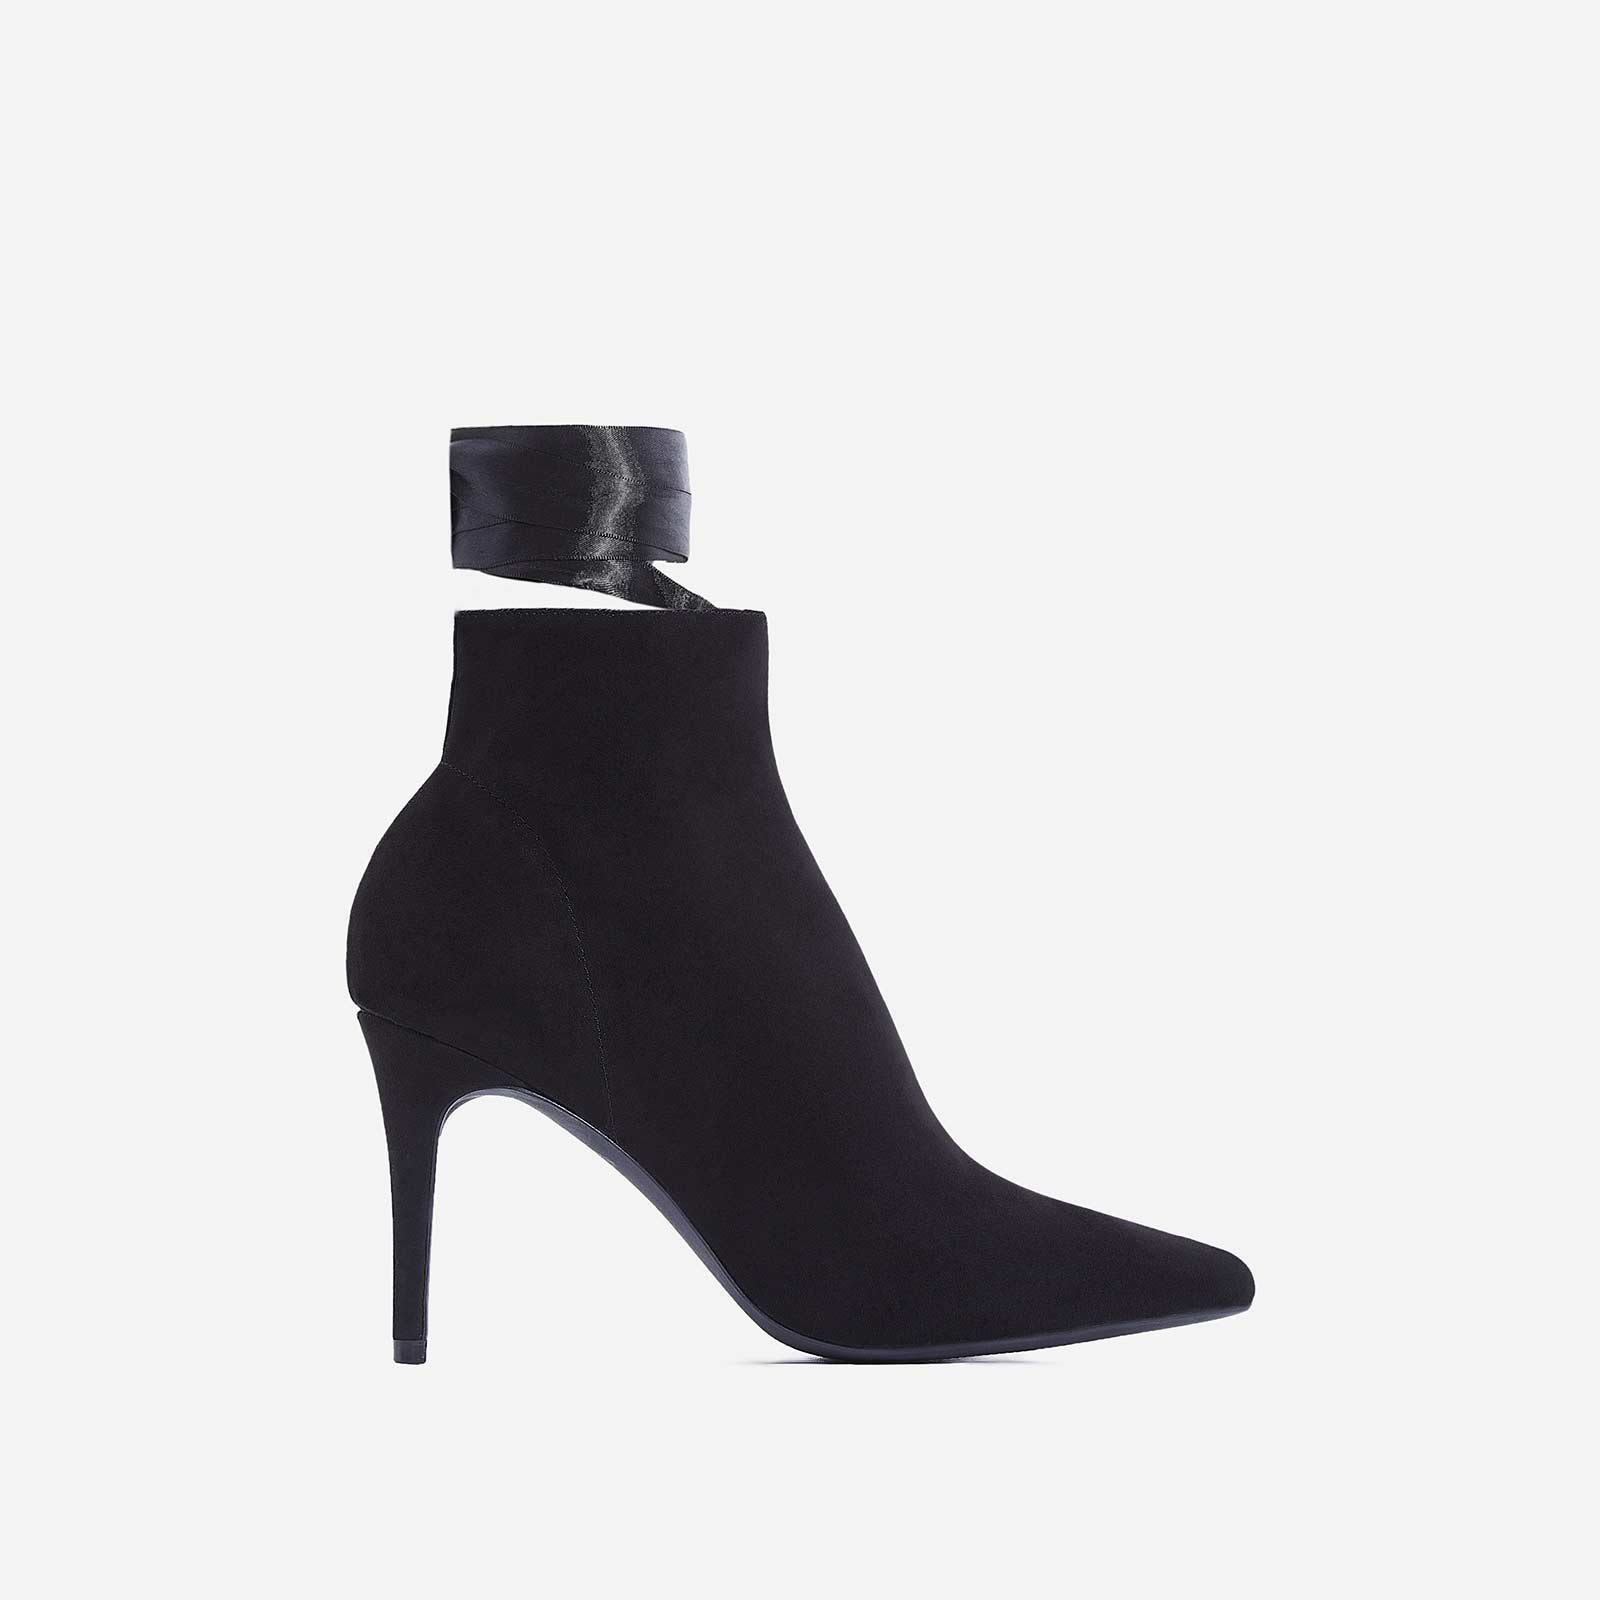 Becca Lace Up Ankle Boot In Black Faux Suede